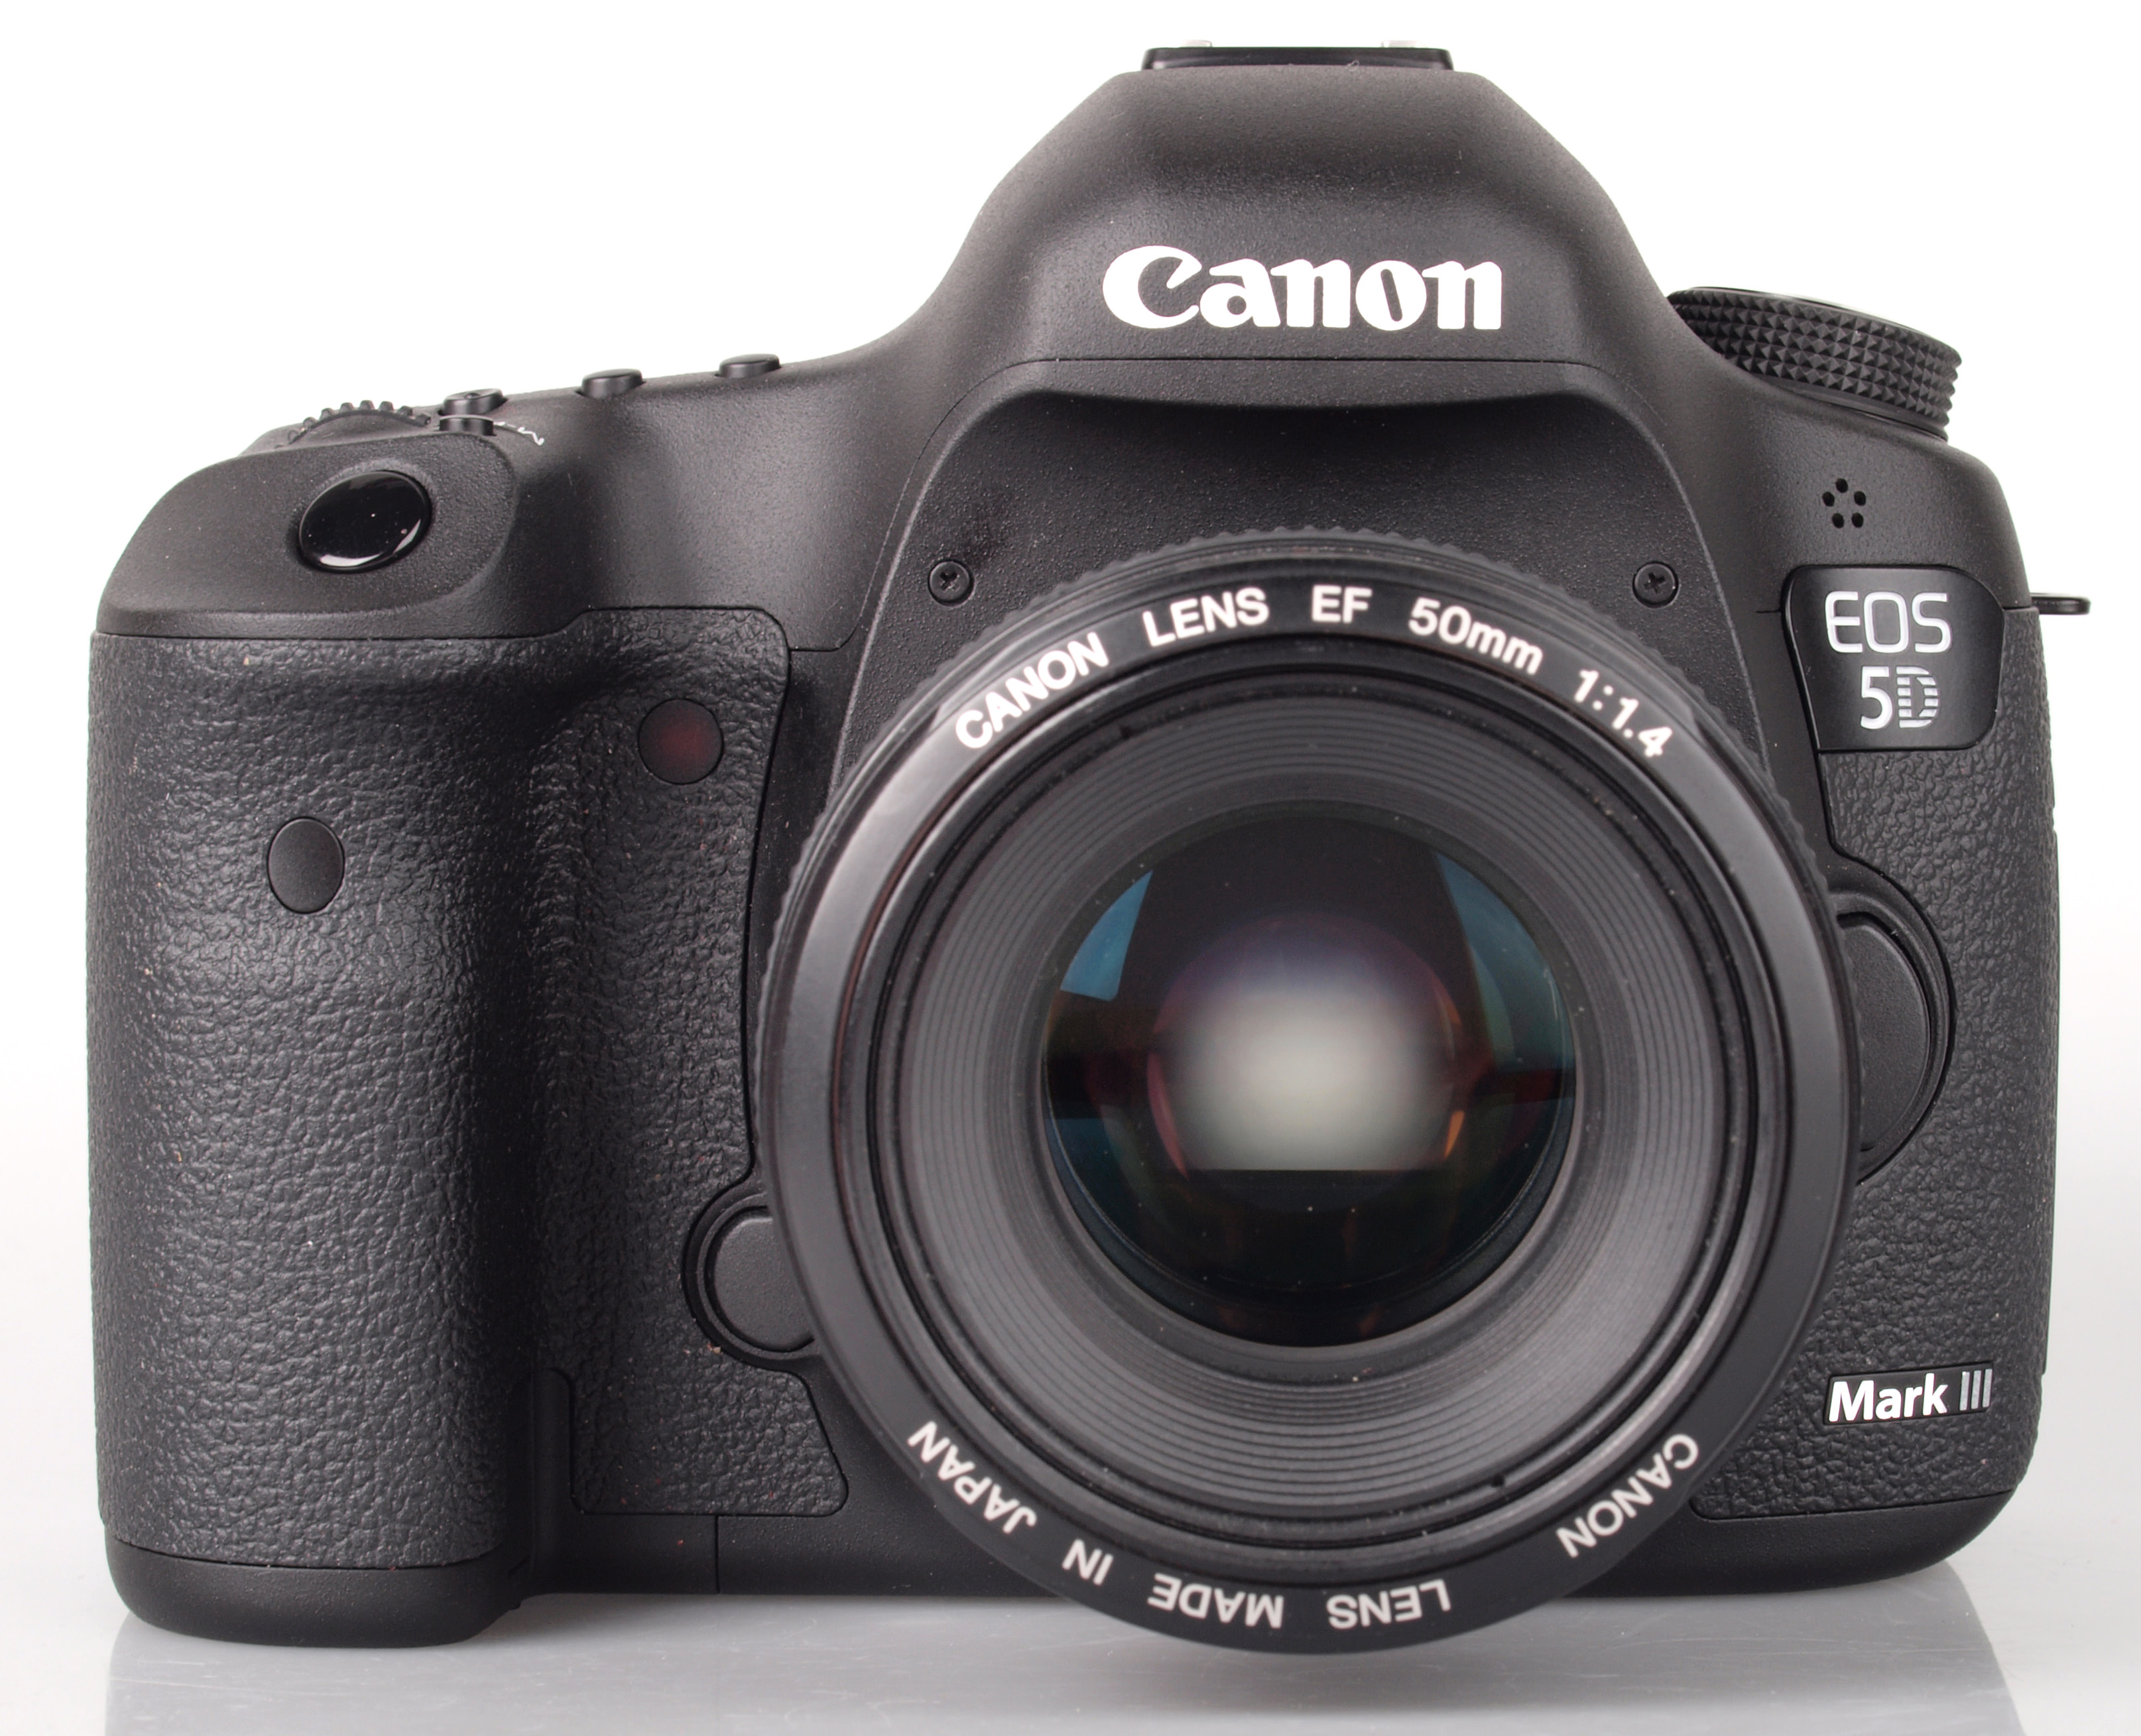 canon eos 5d mark iii digital slr review. Black Bedroom Furniture Sets. Home Design Ideas